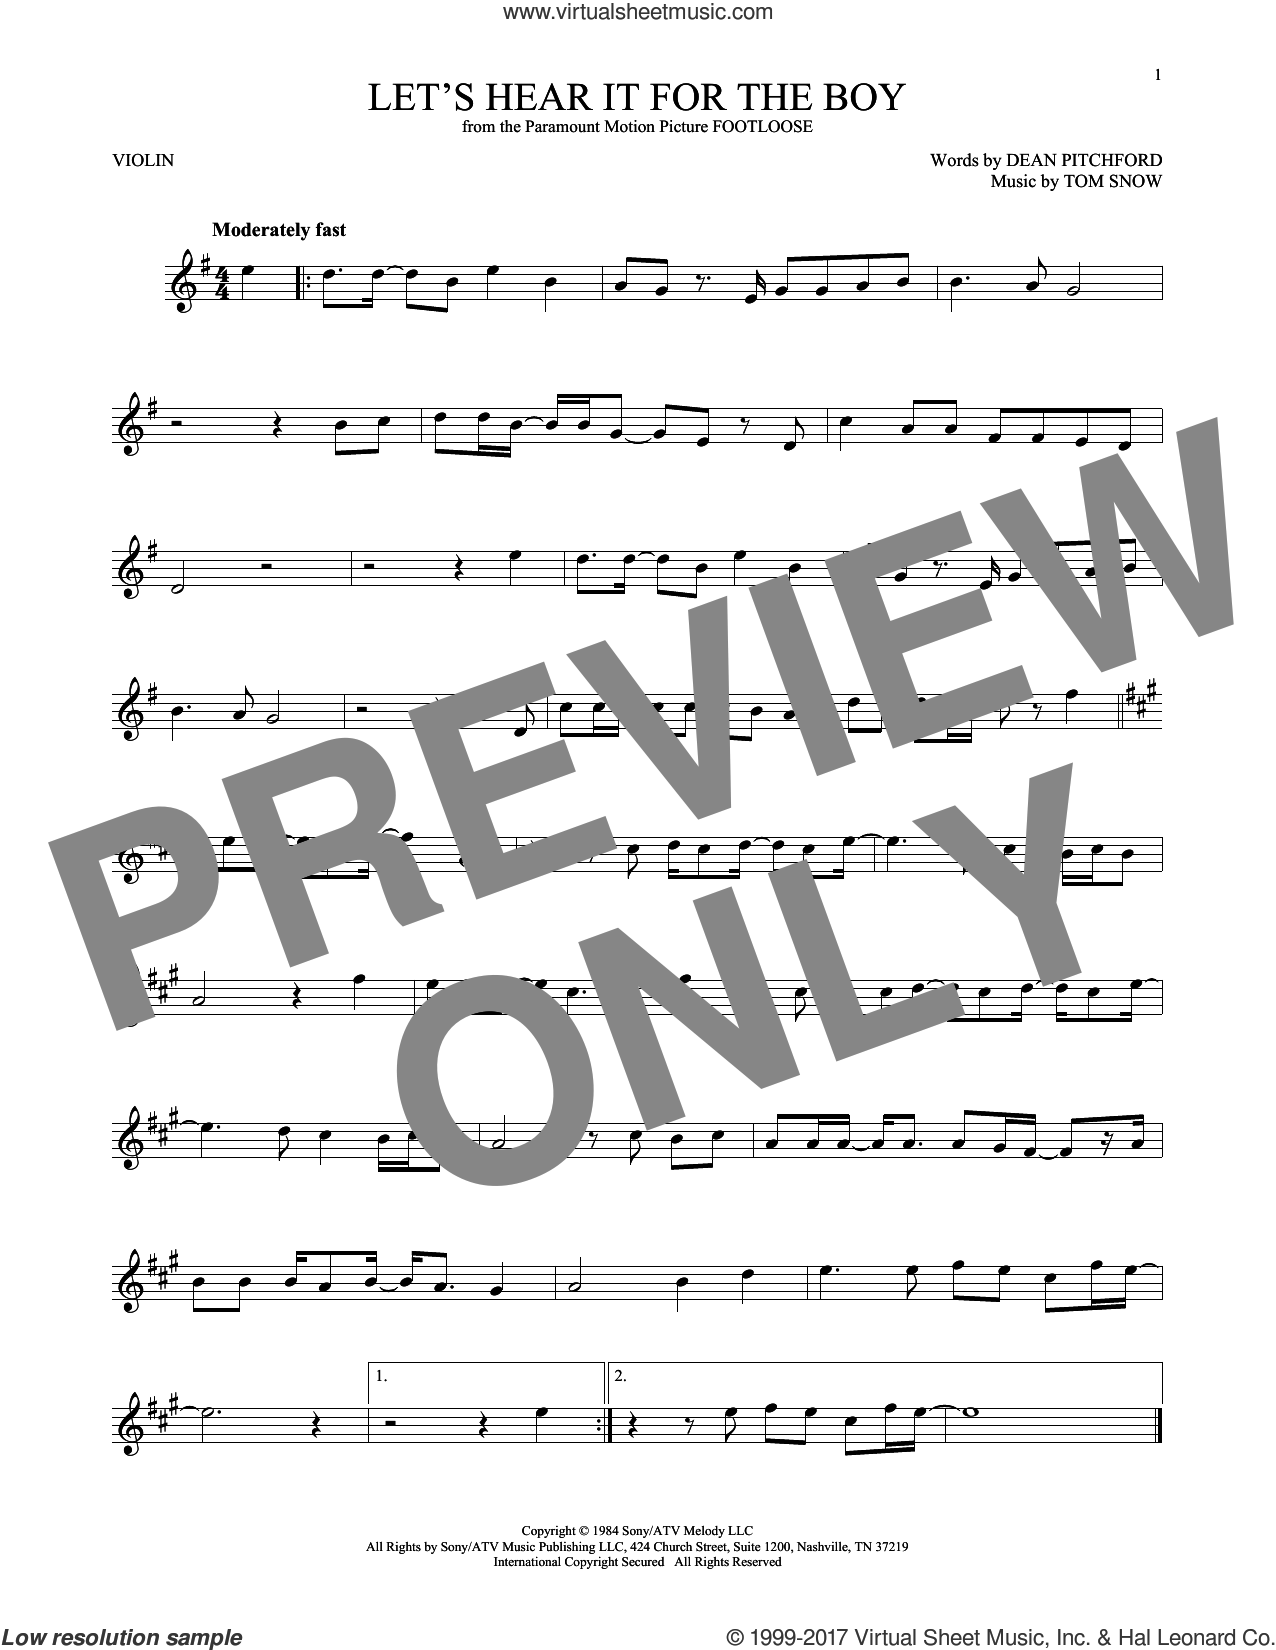 Let's Hear It For The Boy sheet music for violin solo by Deniece Williams, Dean Pitchford and Tom Snow, intermediate. Score Image Preview.